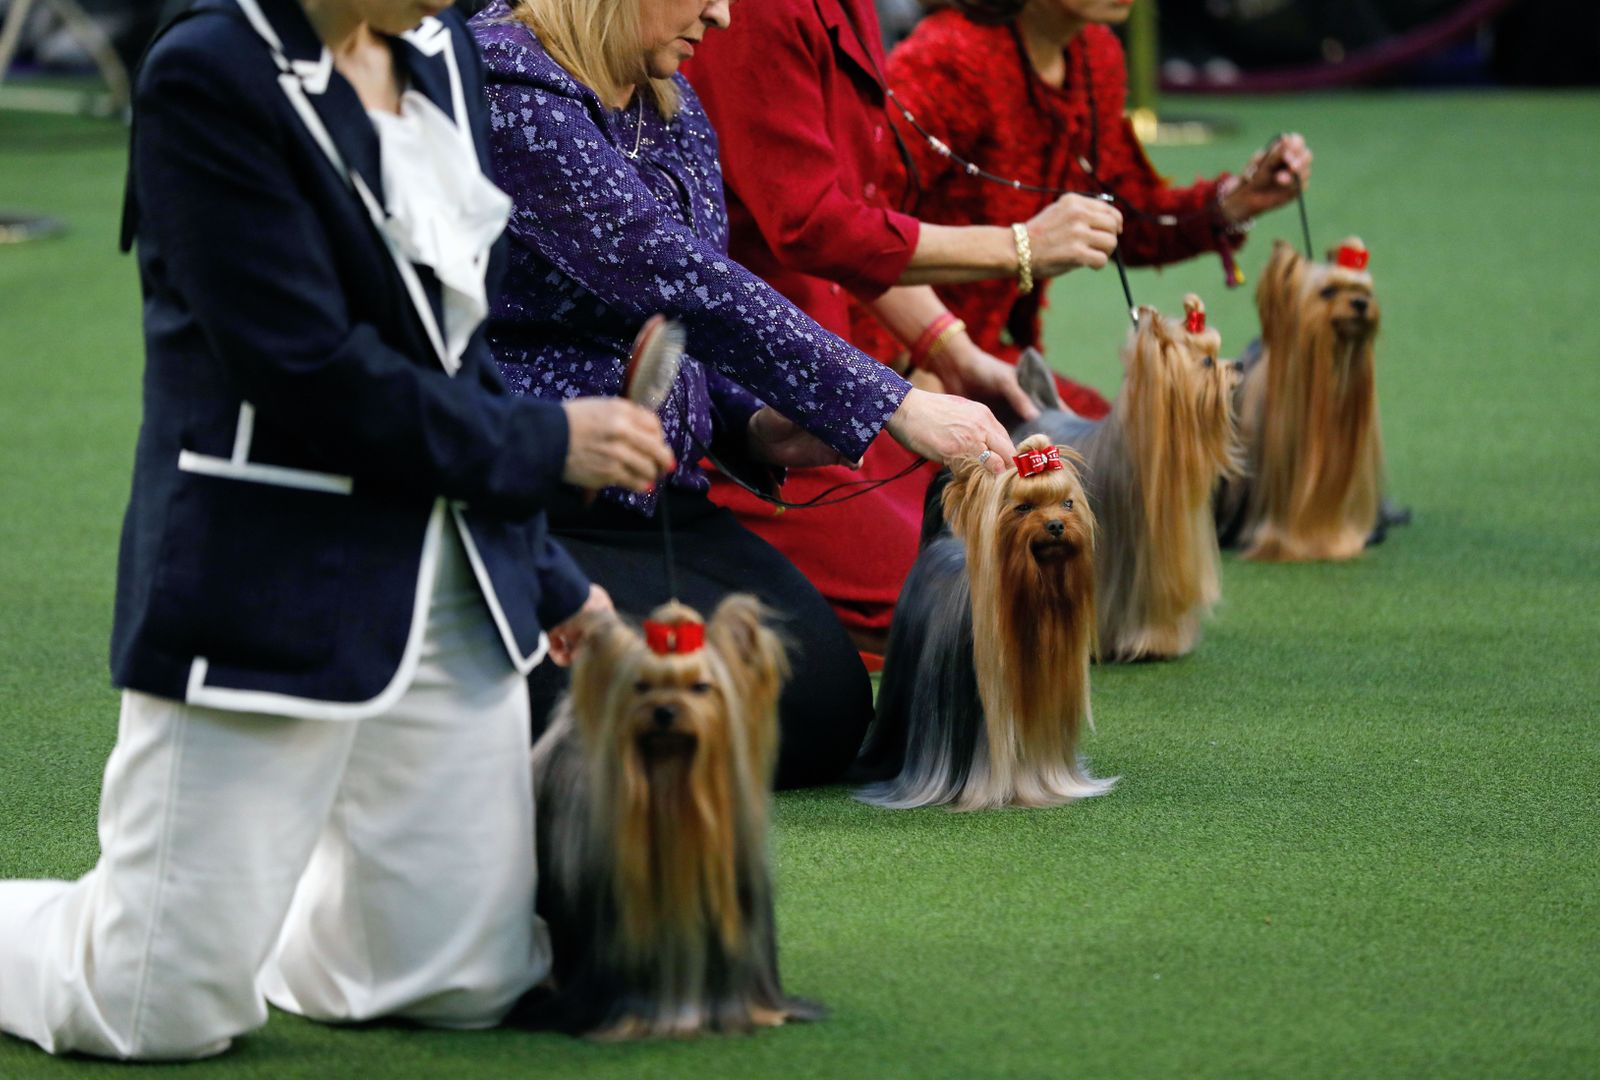 2020 Westminster Kennel Club Dog Show in New York, USA - 10 Feb 2020